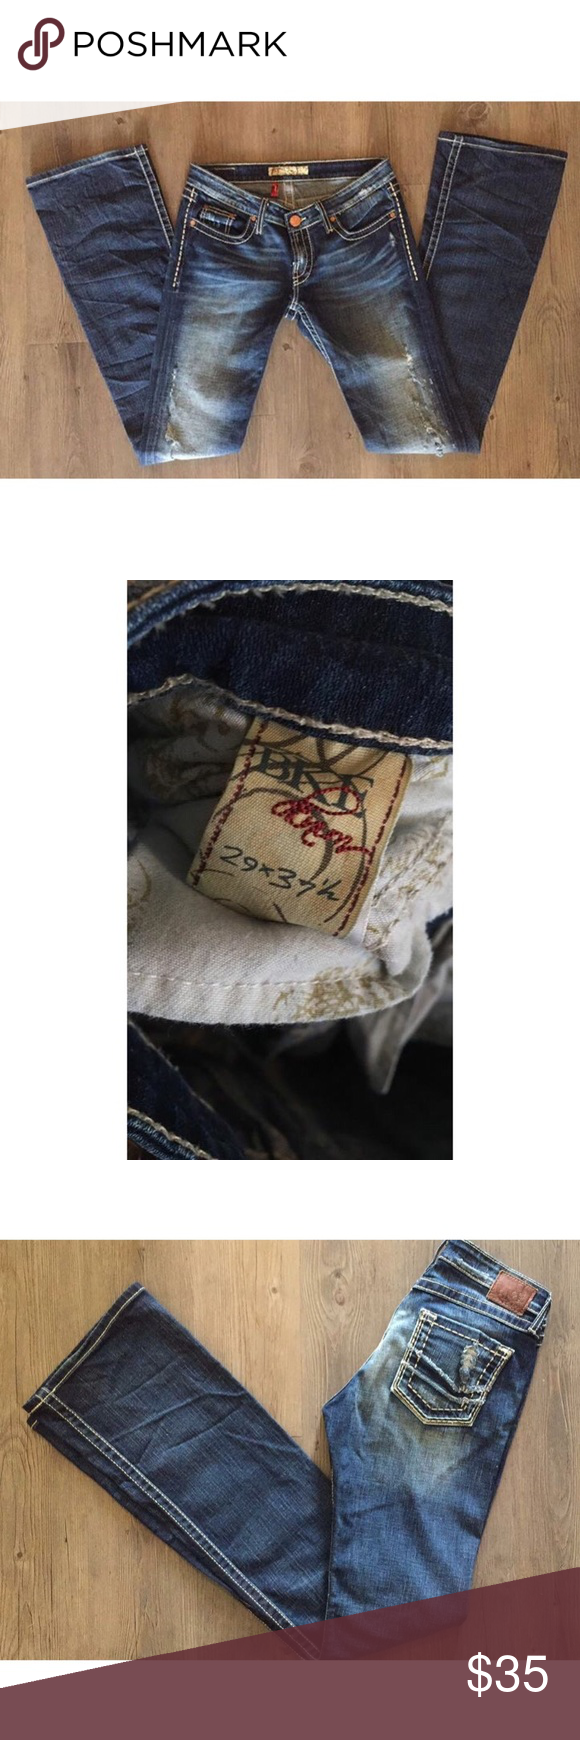 BKE Jeans BKE Jeans size 29 with an inseam of 37 1/2 inches. (Super long!) flare/boot cut. Worn a couple of times. Great condition! BKE Jeans Boot Cut